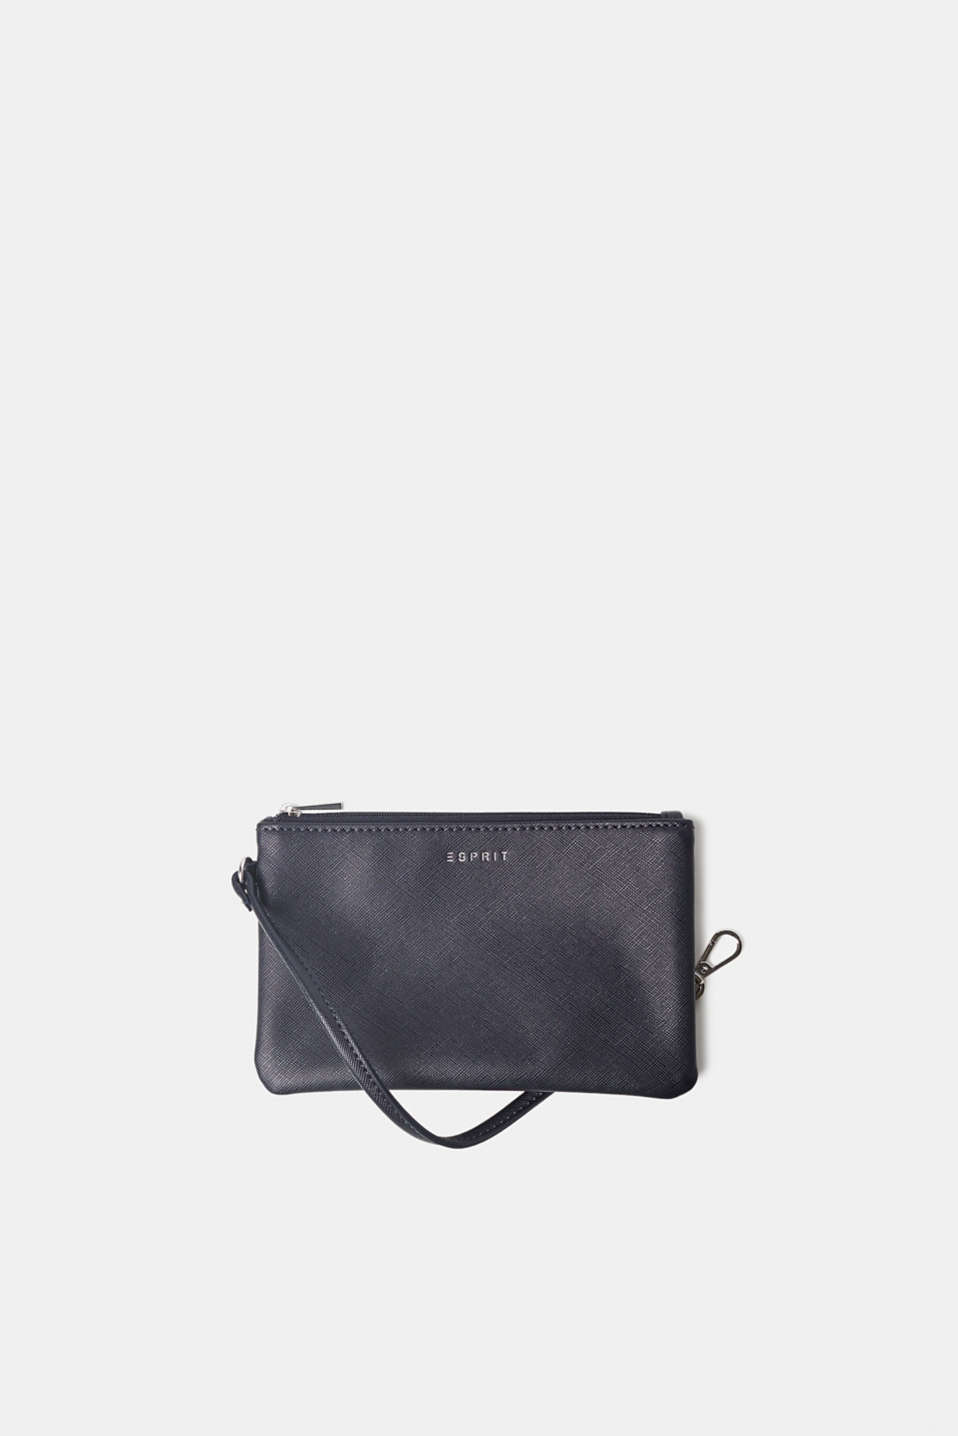 Esprit - Small zip bag in textured faux leather